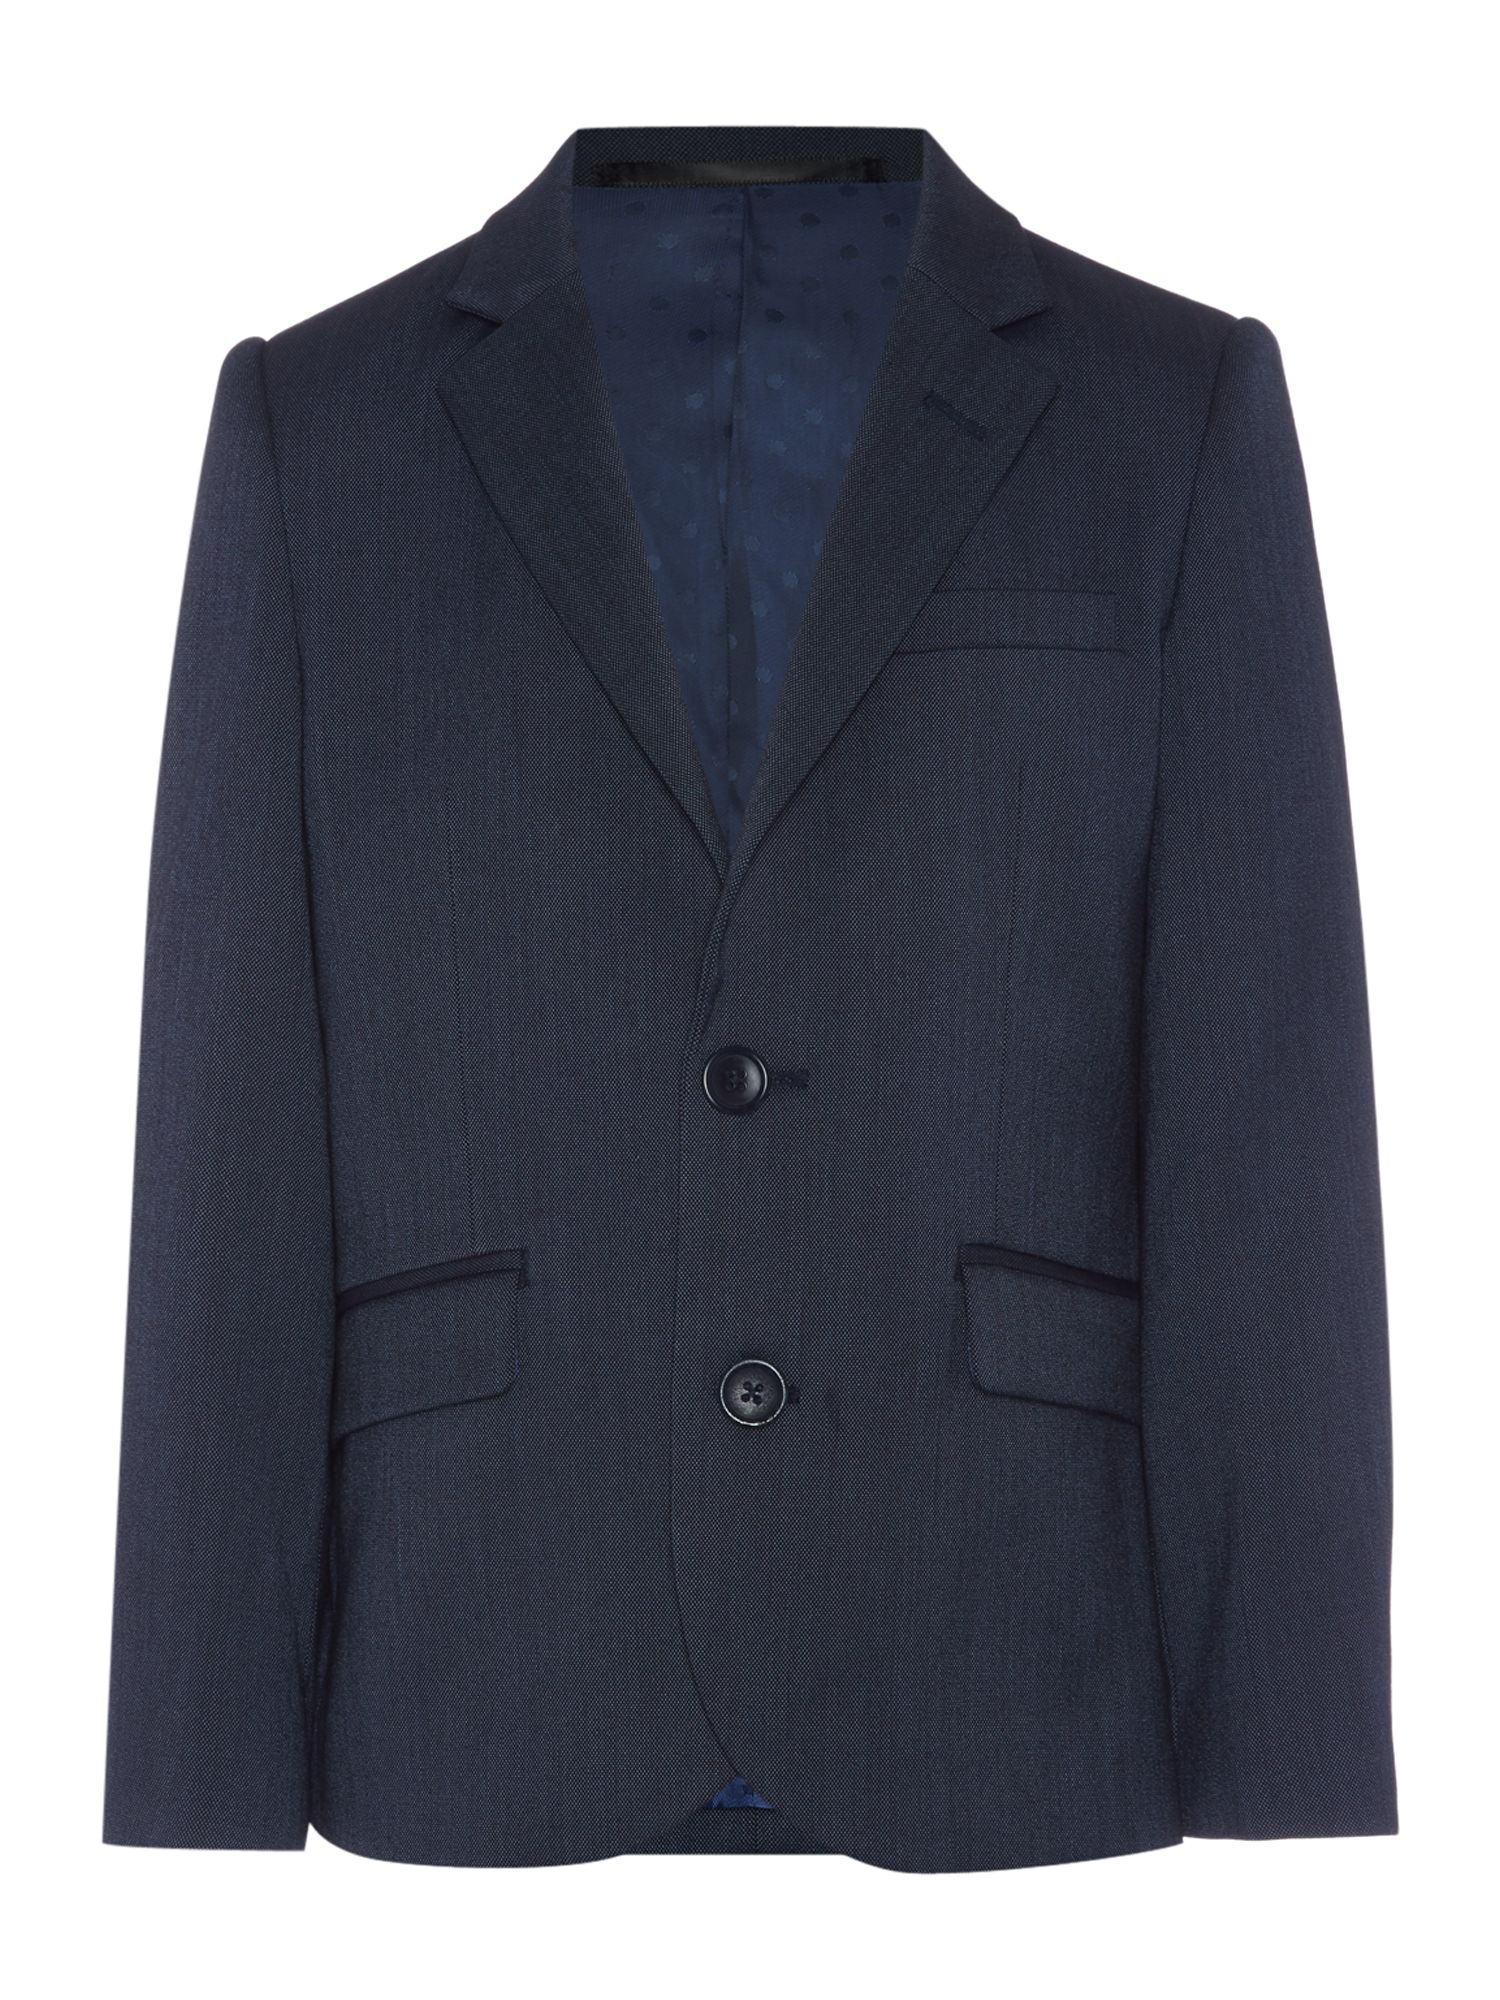 Howick Junior Howick Junior Boys suit jacket end on end, Navy